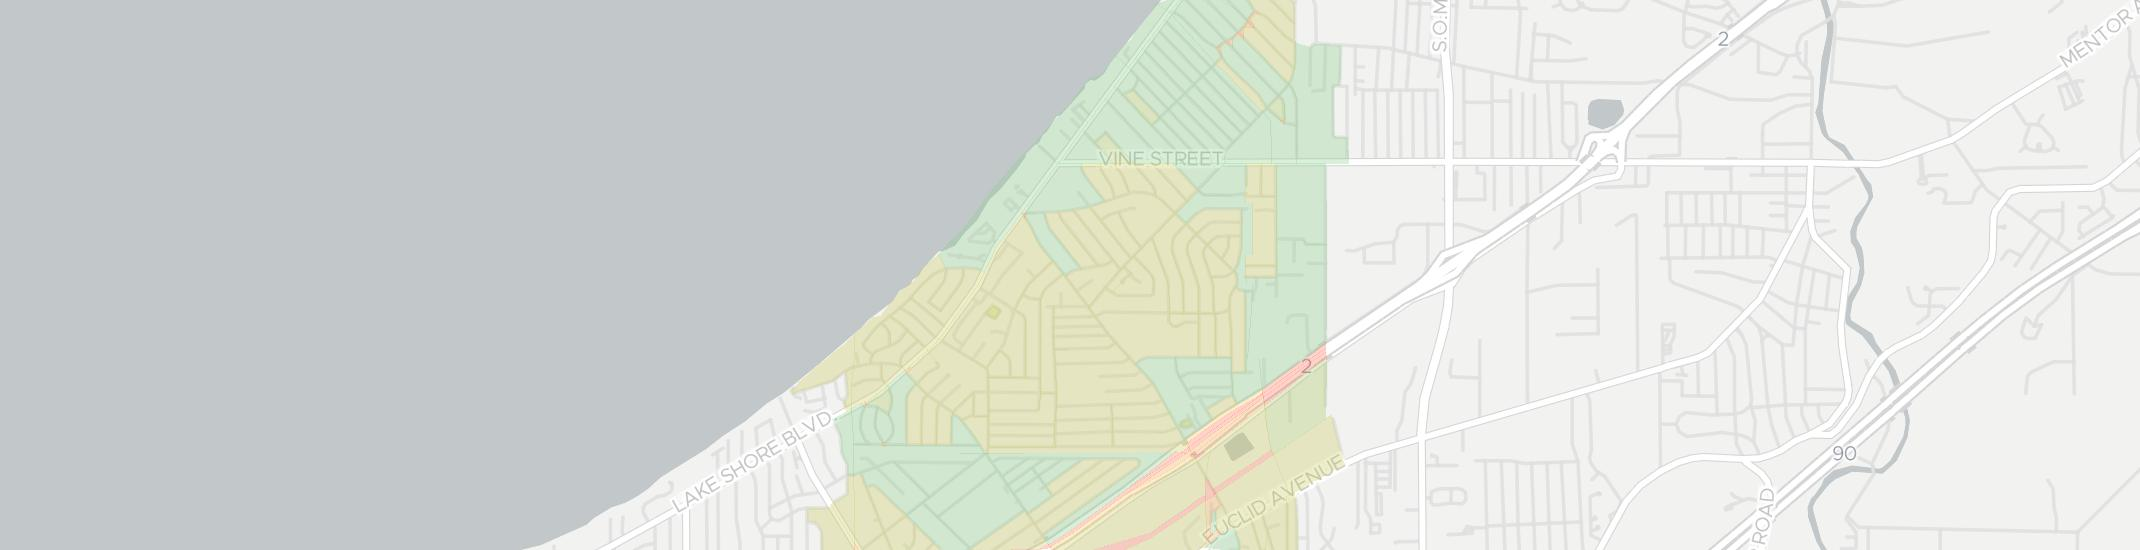 Willowick Internet Competition Map. Click for interactive map.